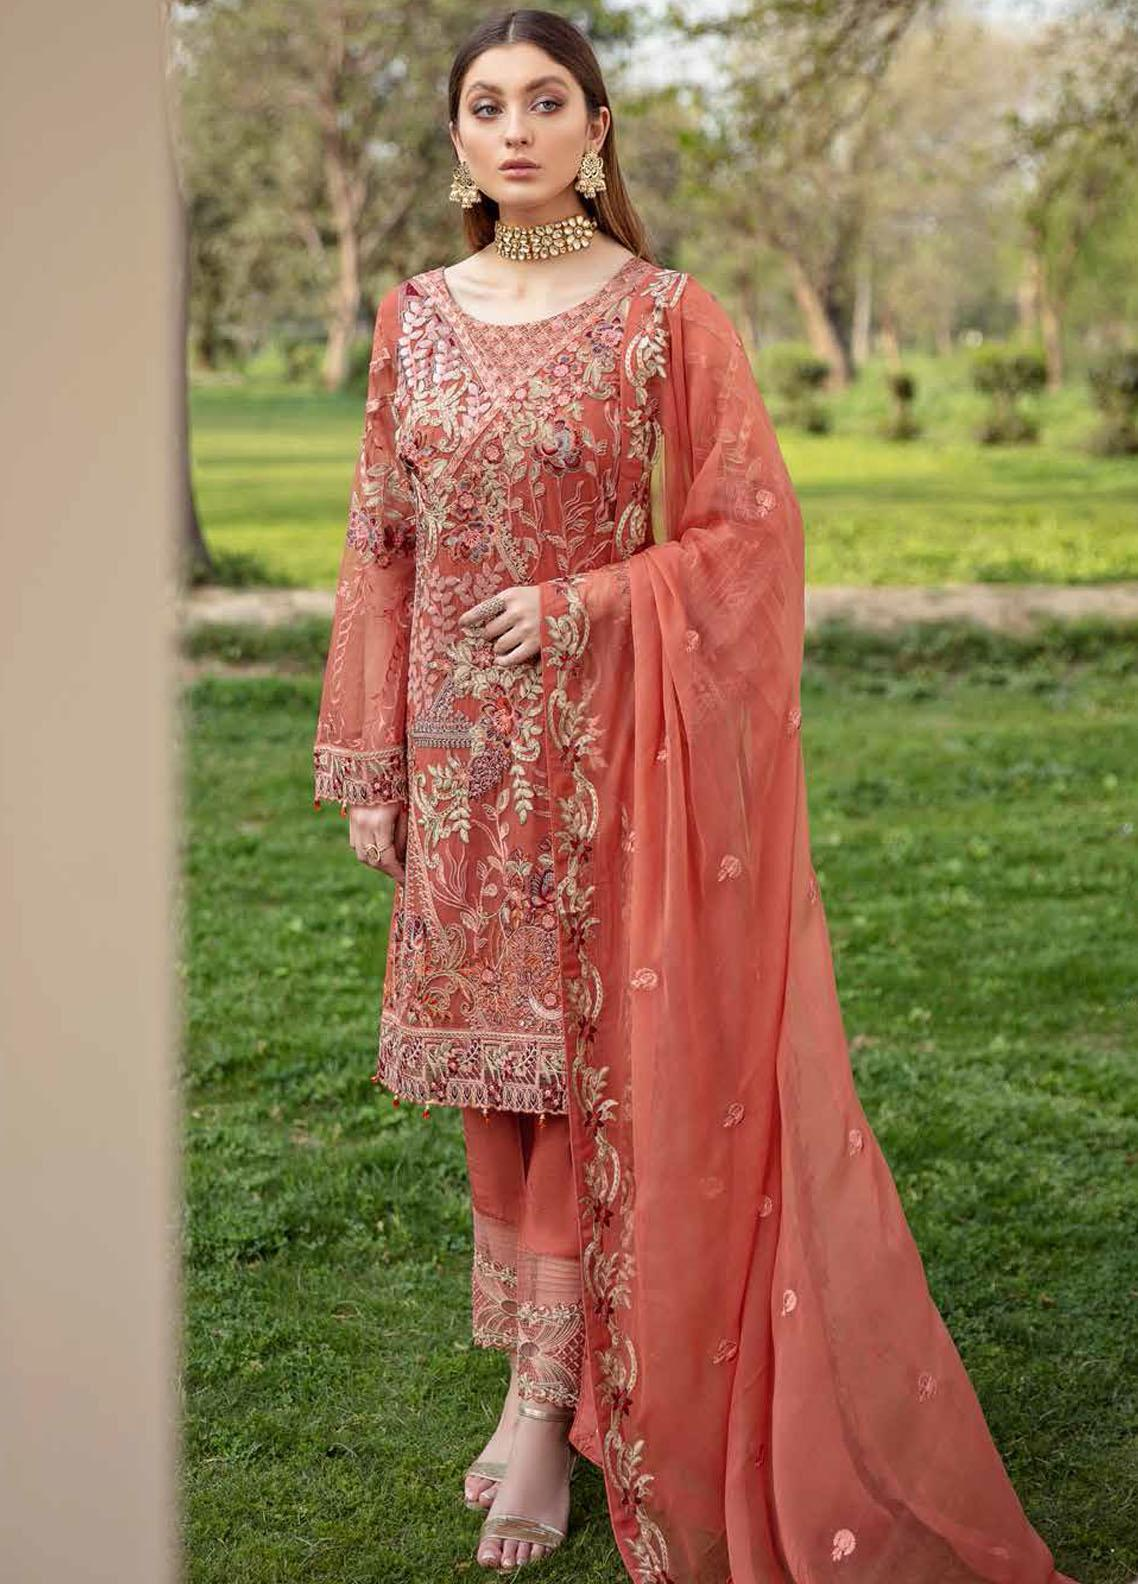 Ramsha Embroidered Chiffon Suits Unstitched 3 Piece RSH21-C20 2010 - Luxury Collection